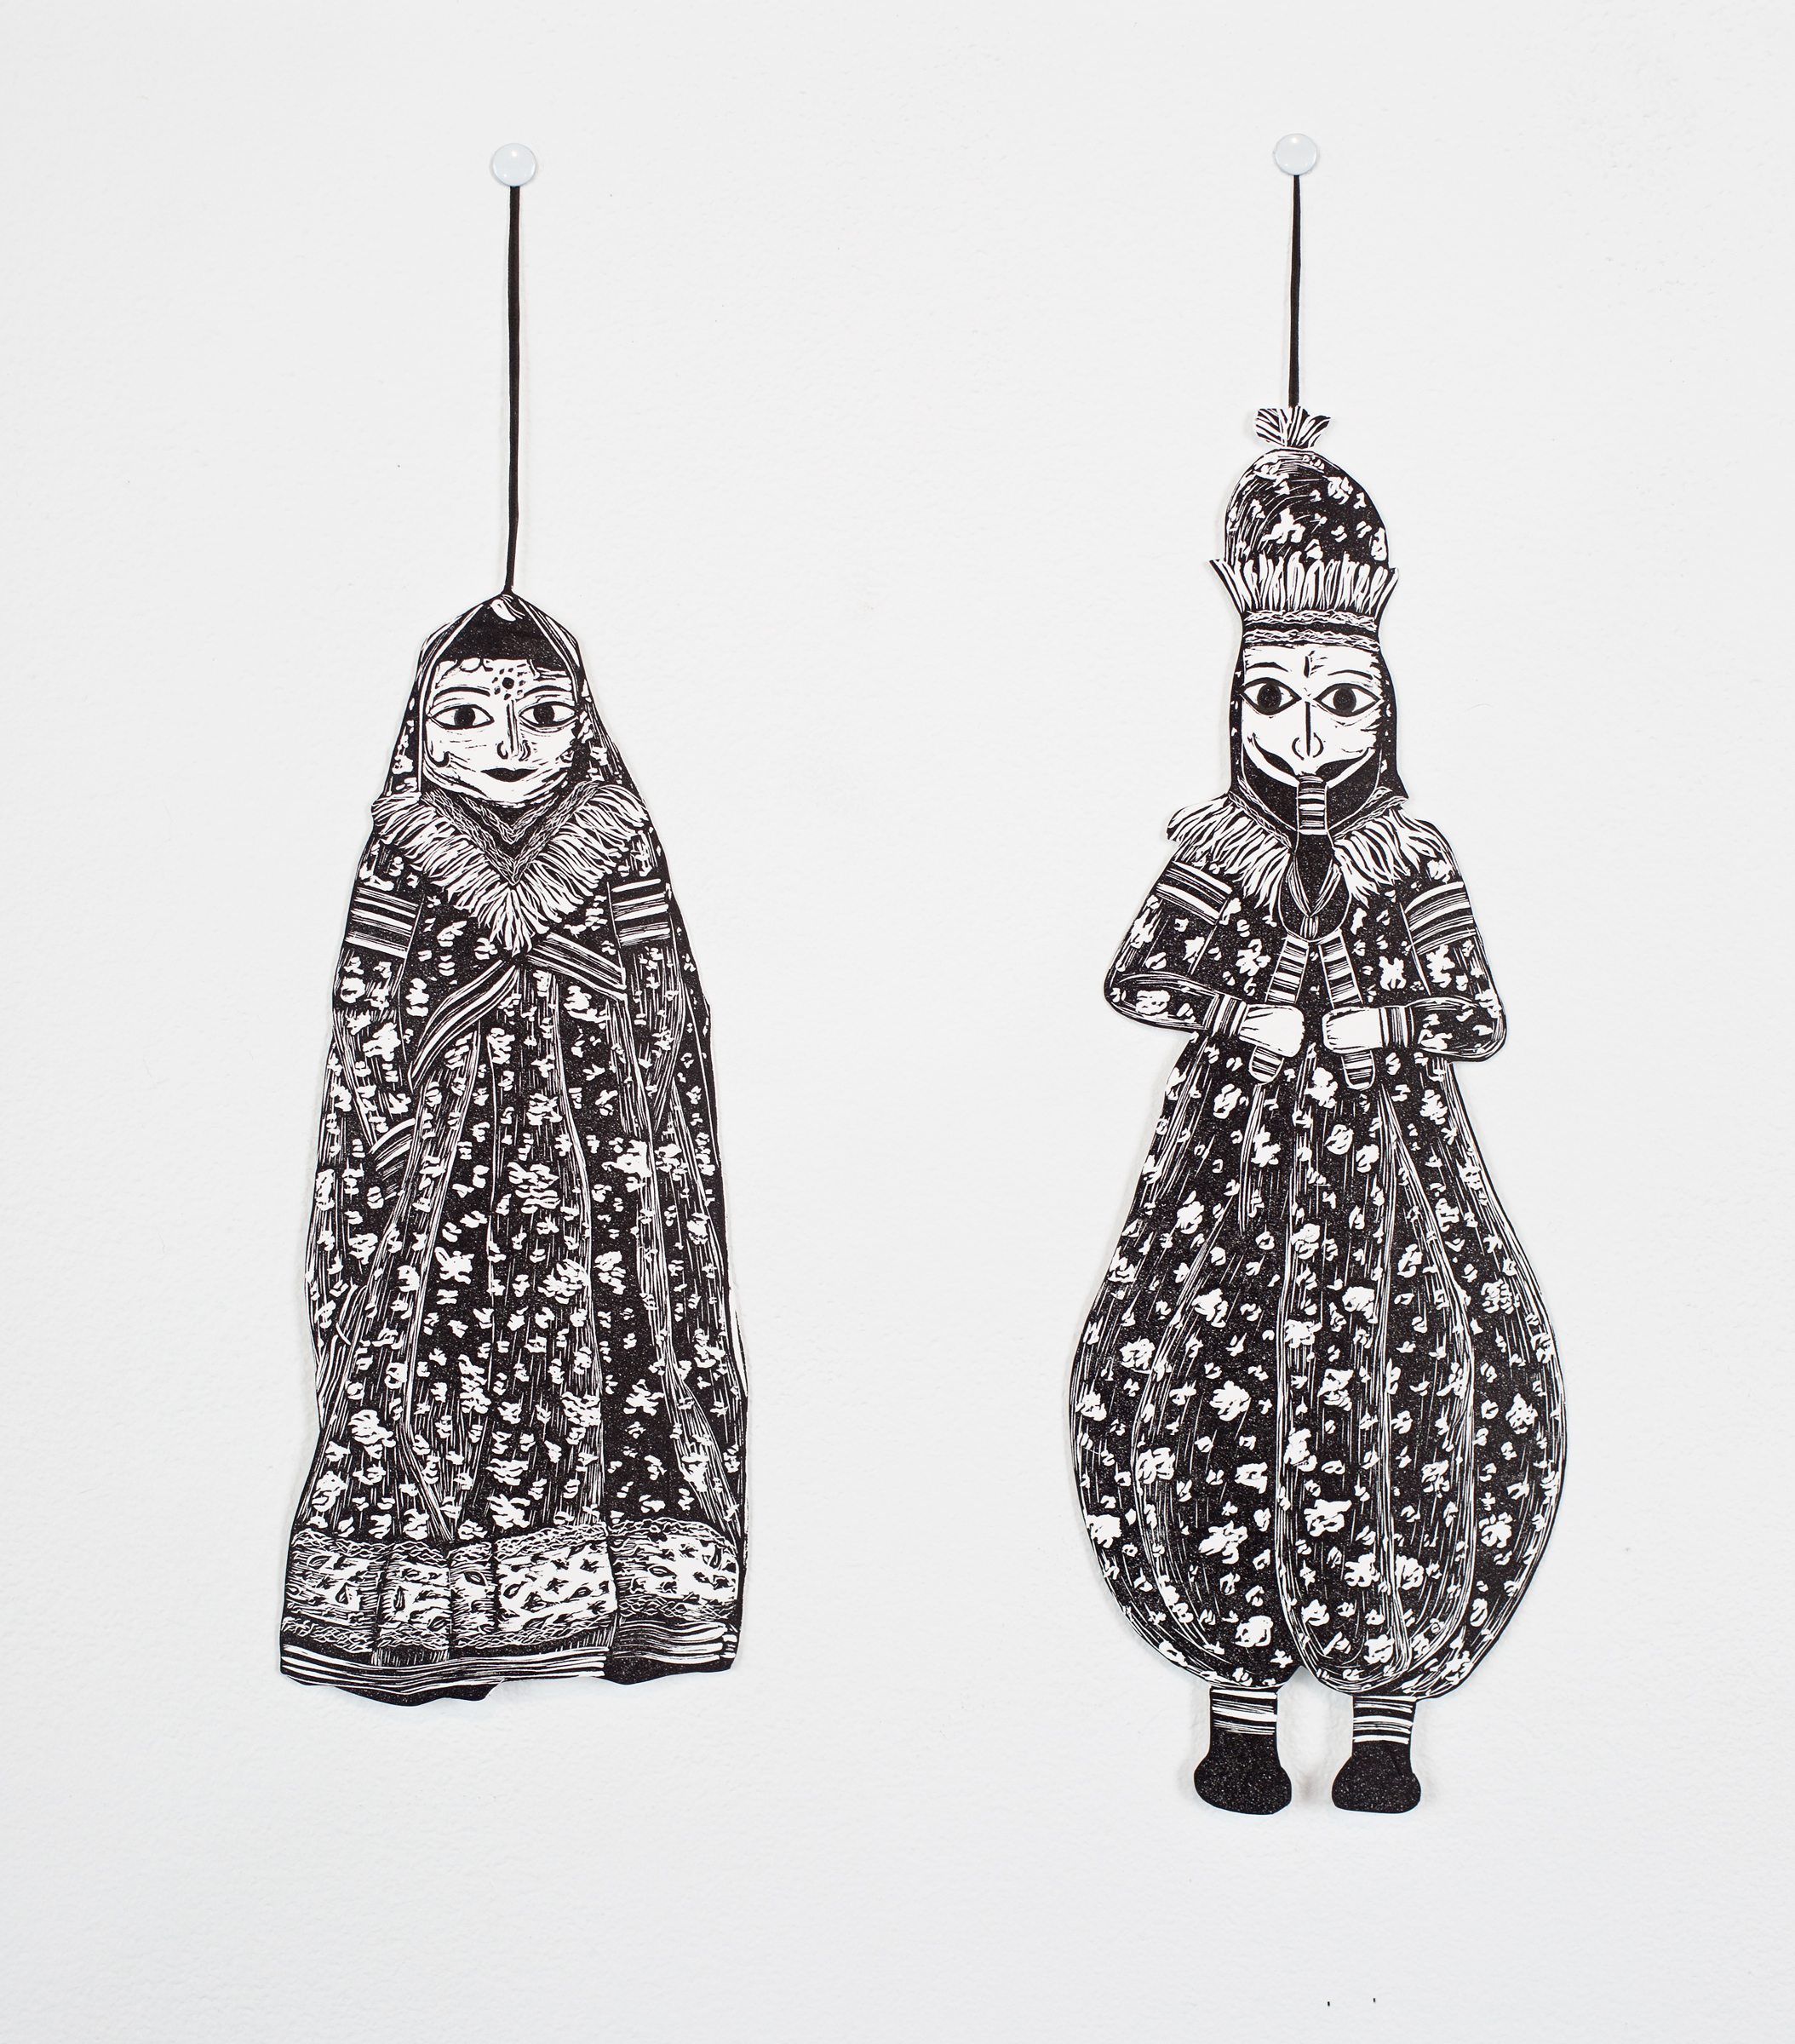 """""""Rajasthani Puppets"""", linoleum relief and hand cut out with Xacto, each puppet is around 4x10"""